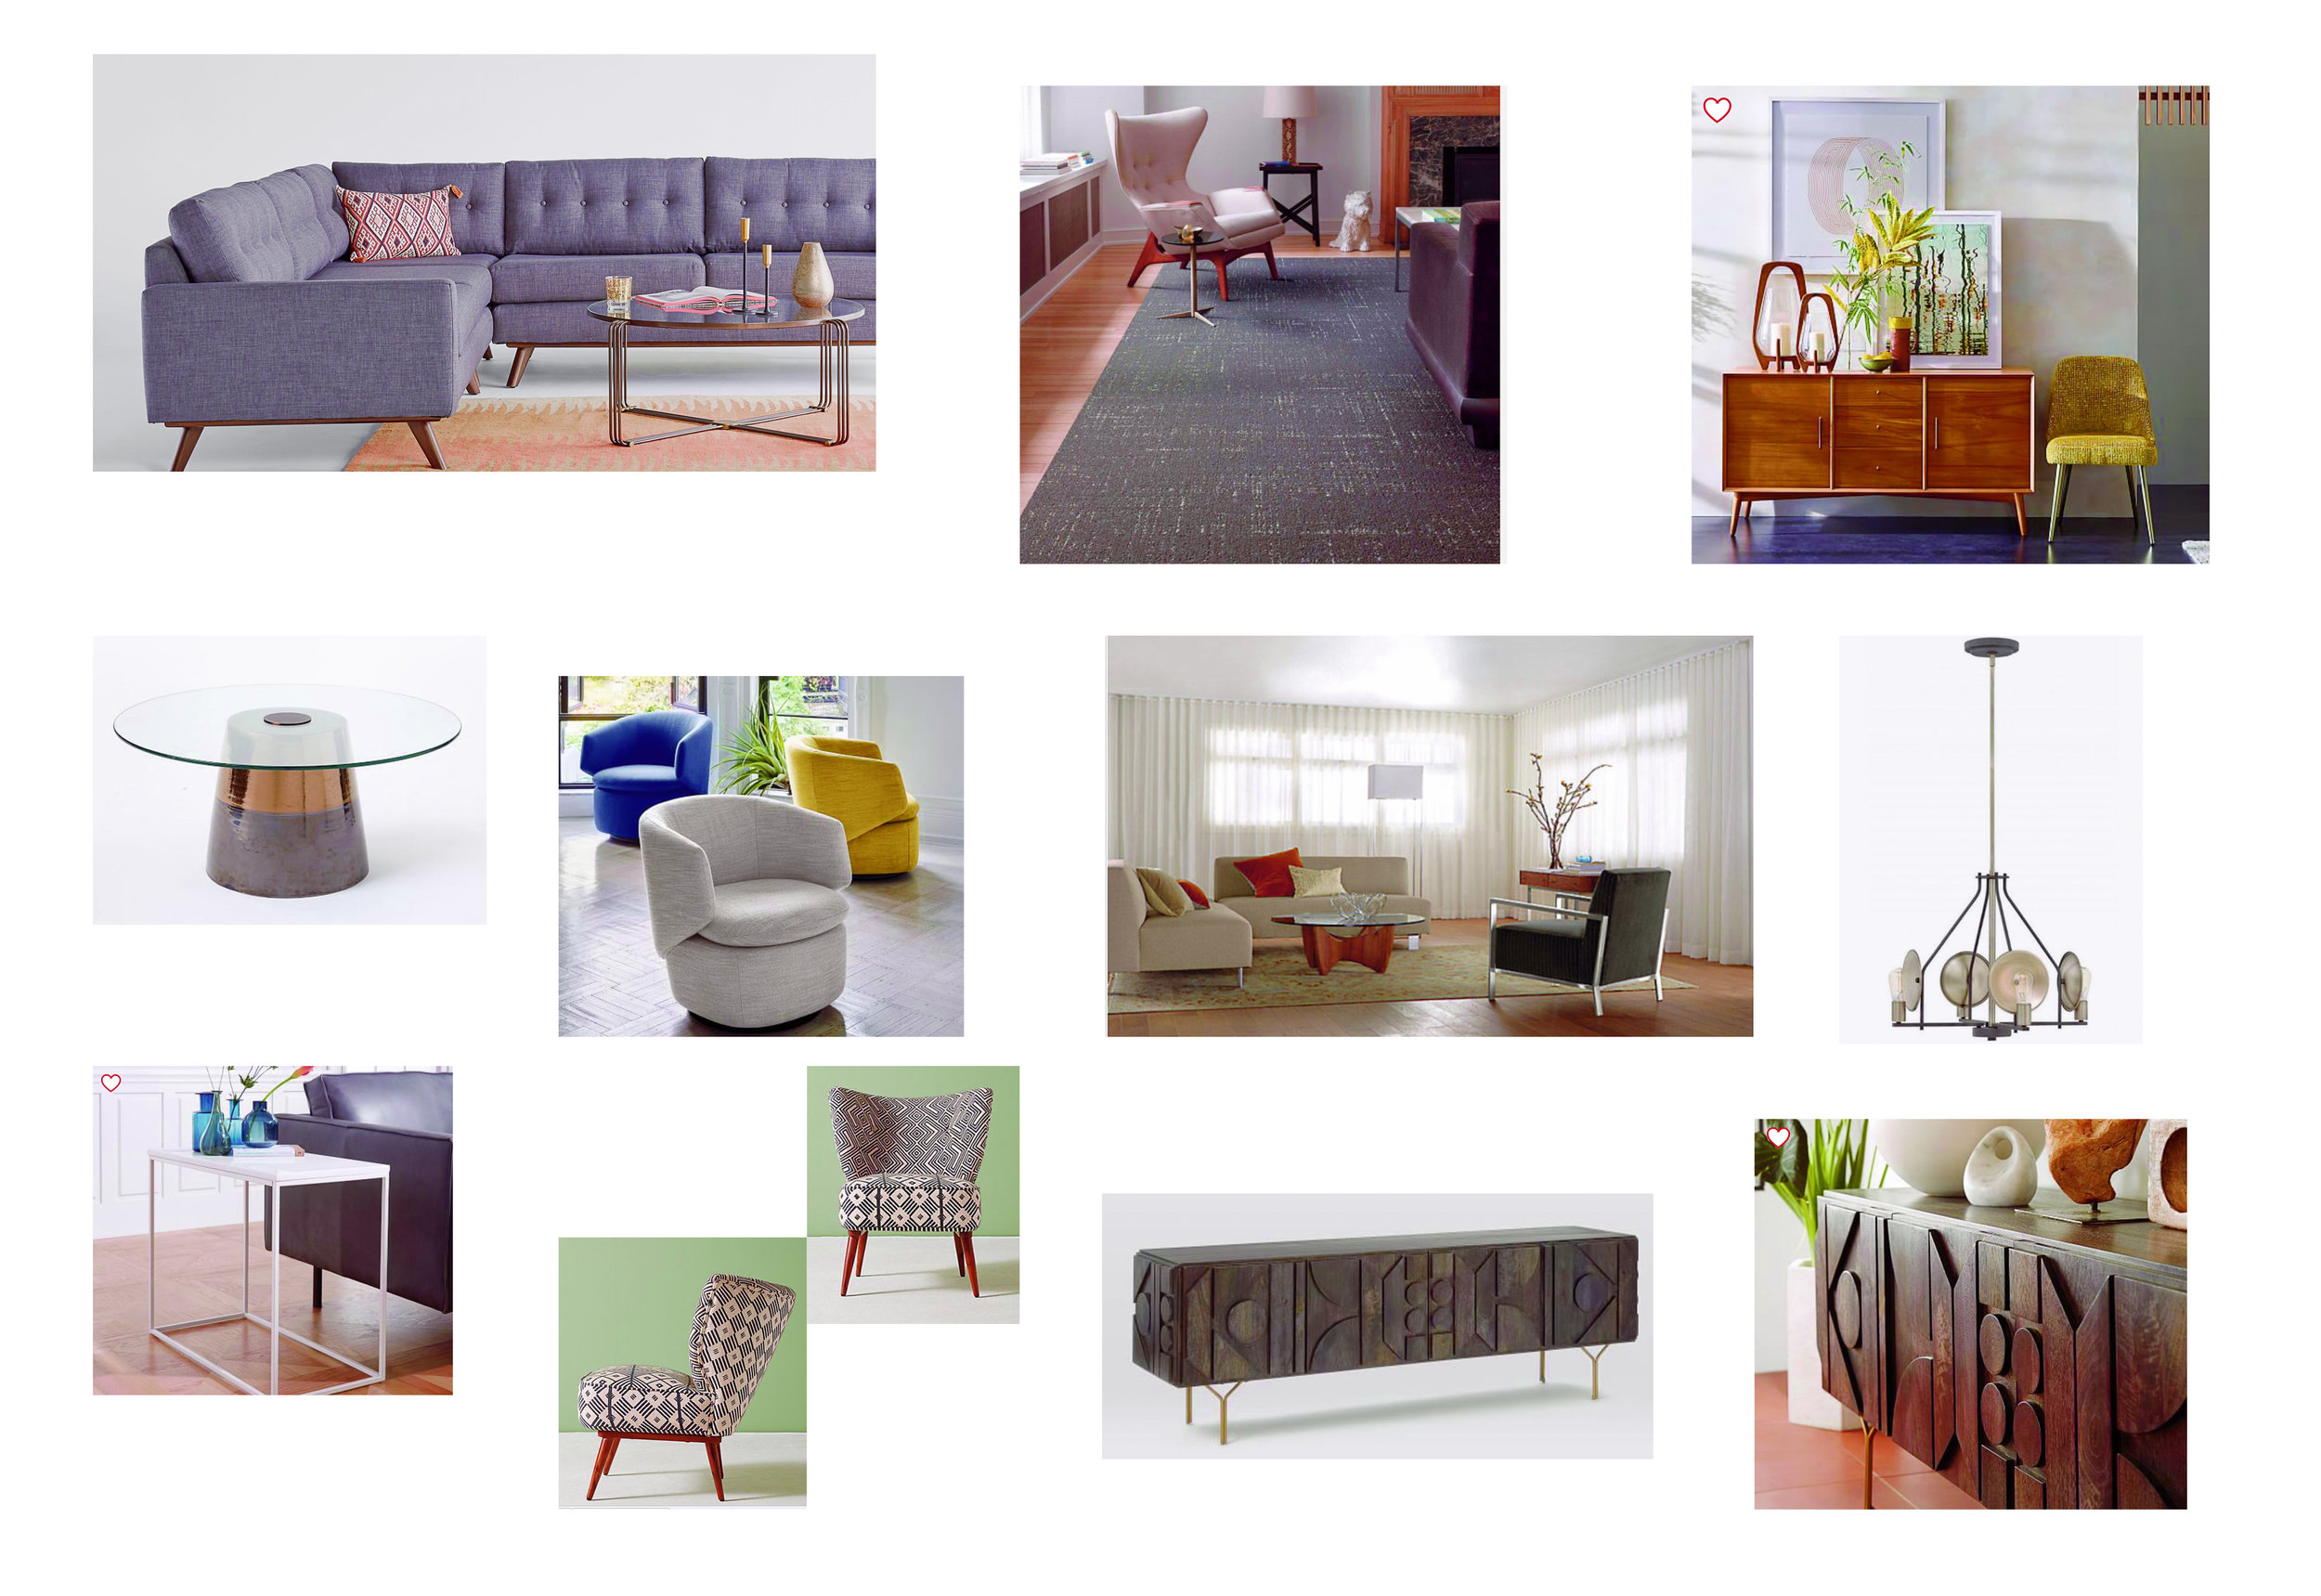 - an image collage showing furniture selections and general design ideas